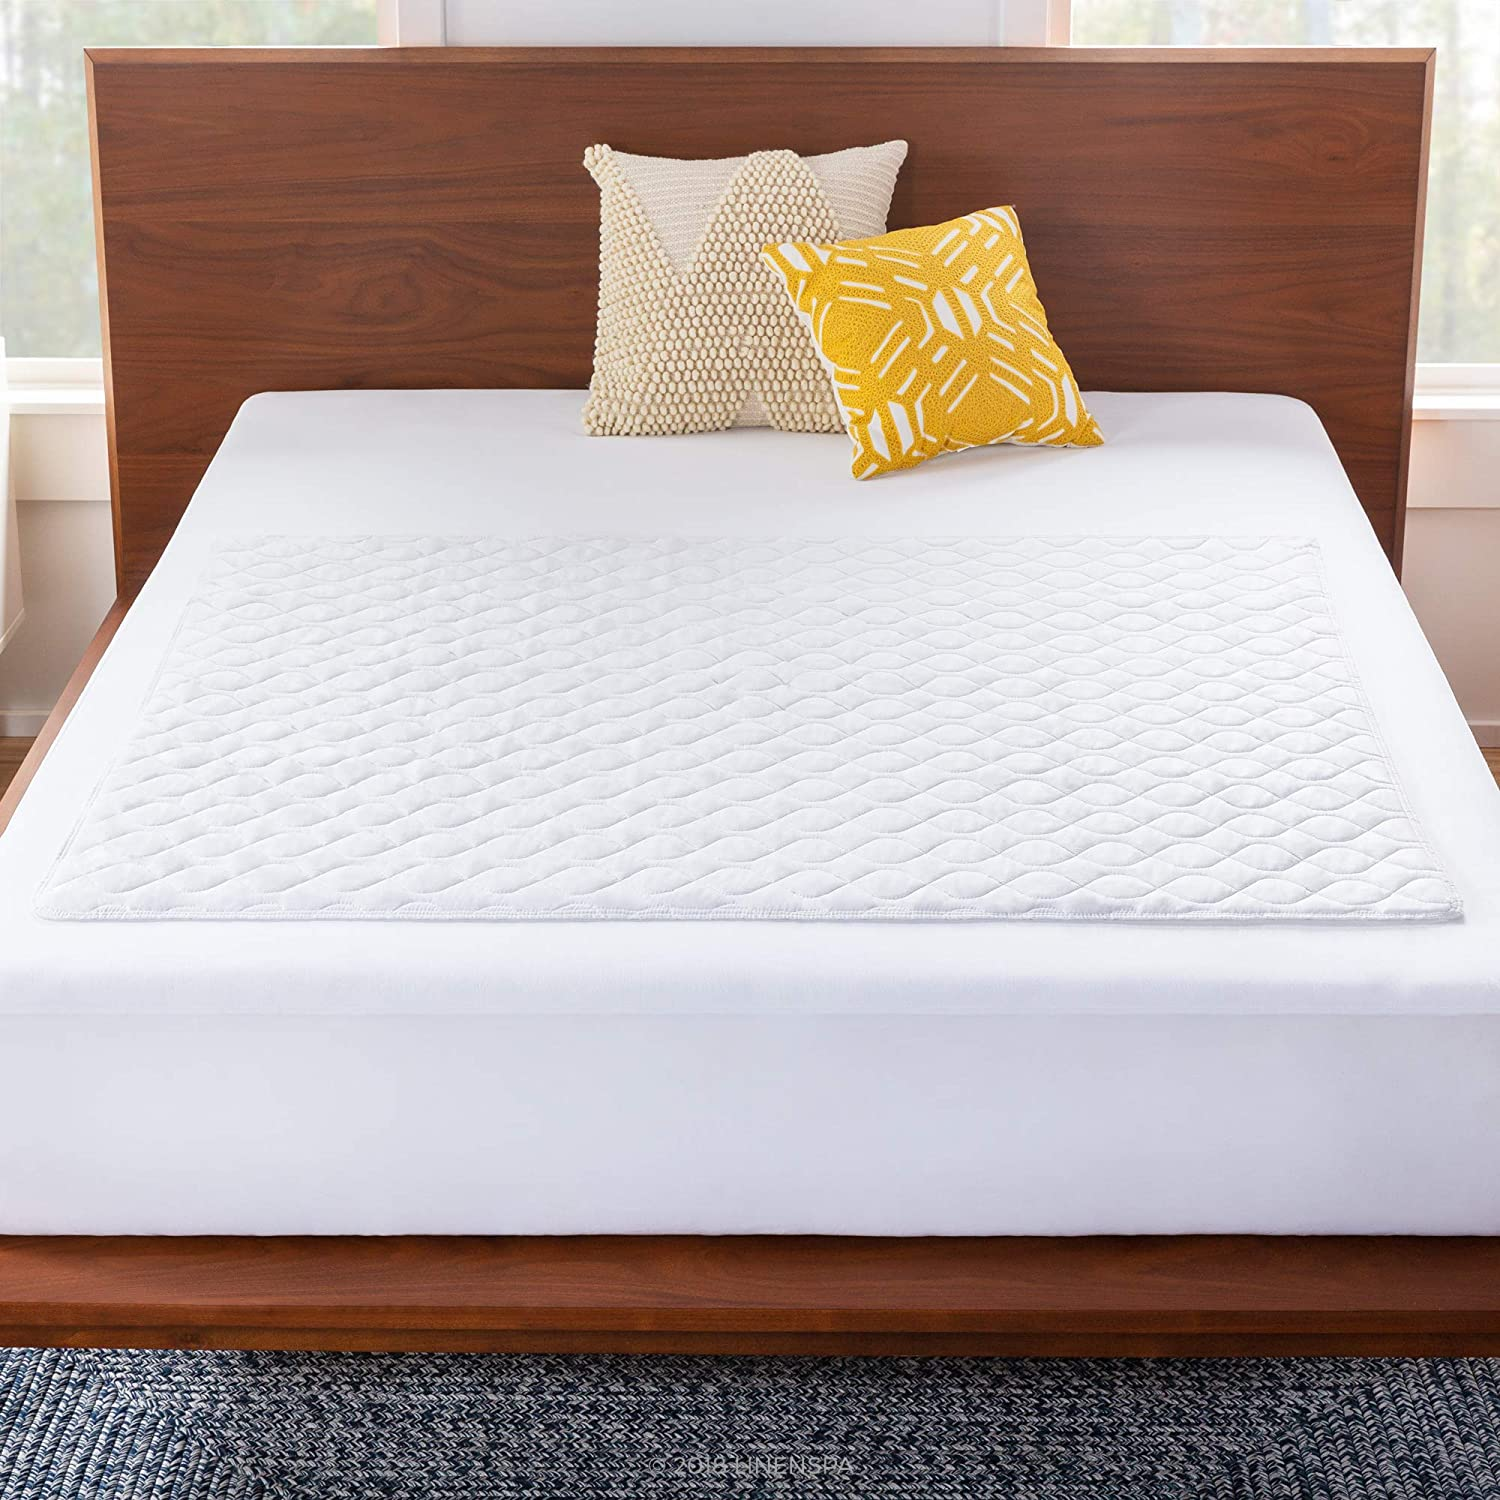 Amazon Com Linenspa 44 X 52 Skid Resistant Waterproof Sheet And Mattress Protector Pad Super Comfortable Quilted Finish Highly Absorbent For Bed Wetting Incontinence And Pets Machine Washable White Home Kitchen